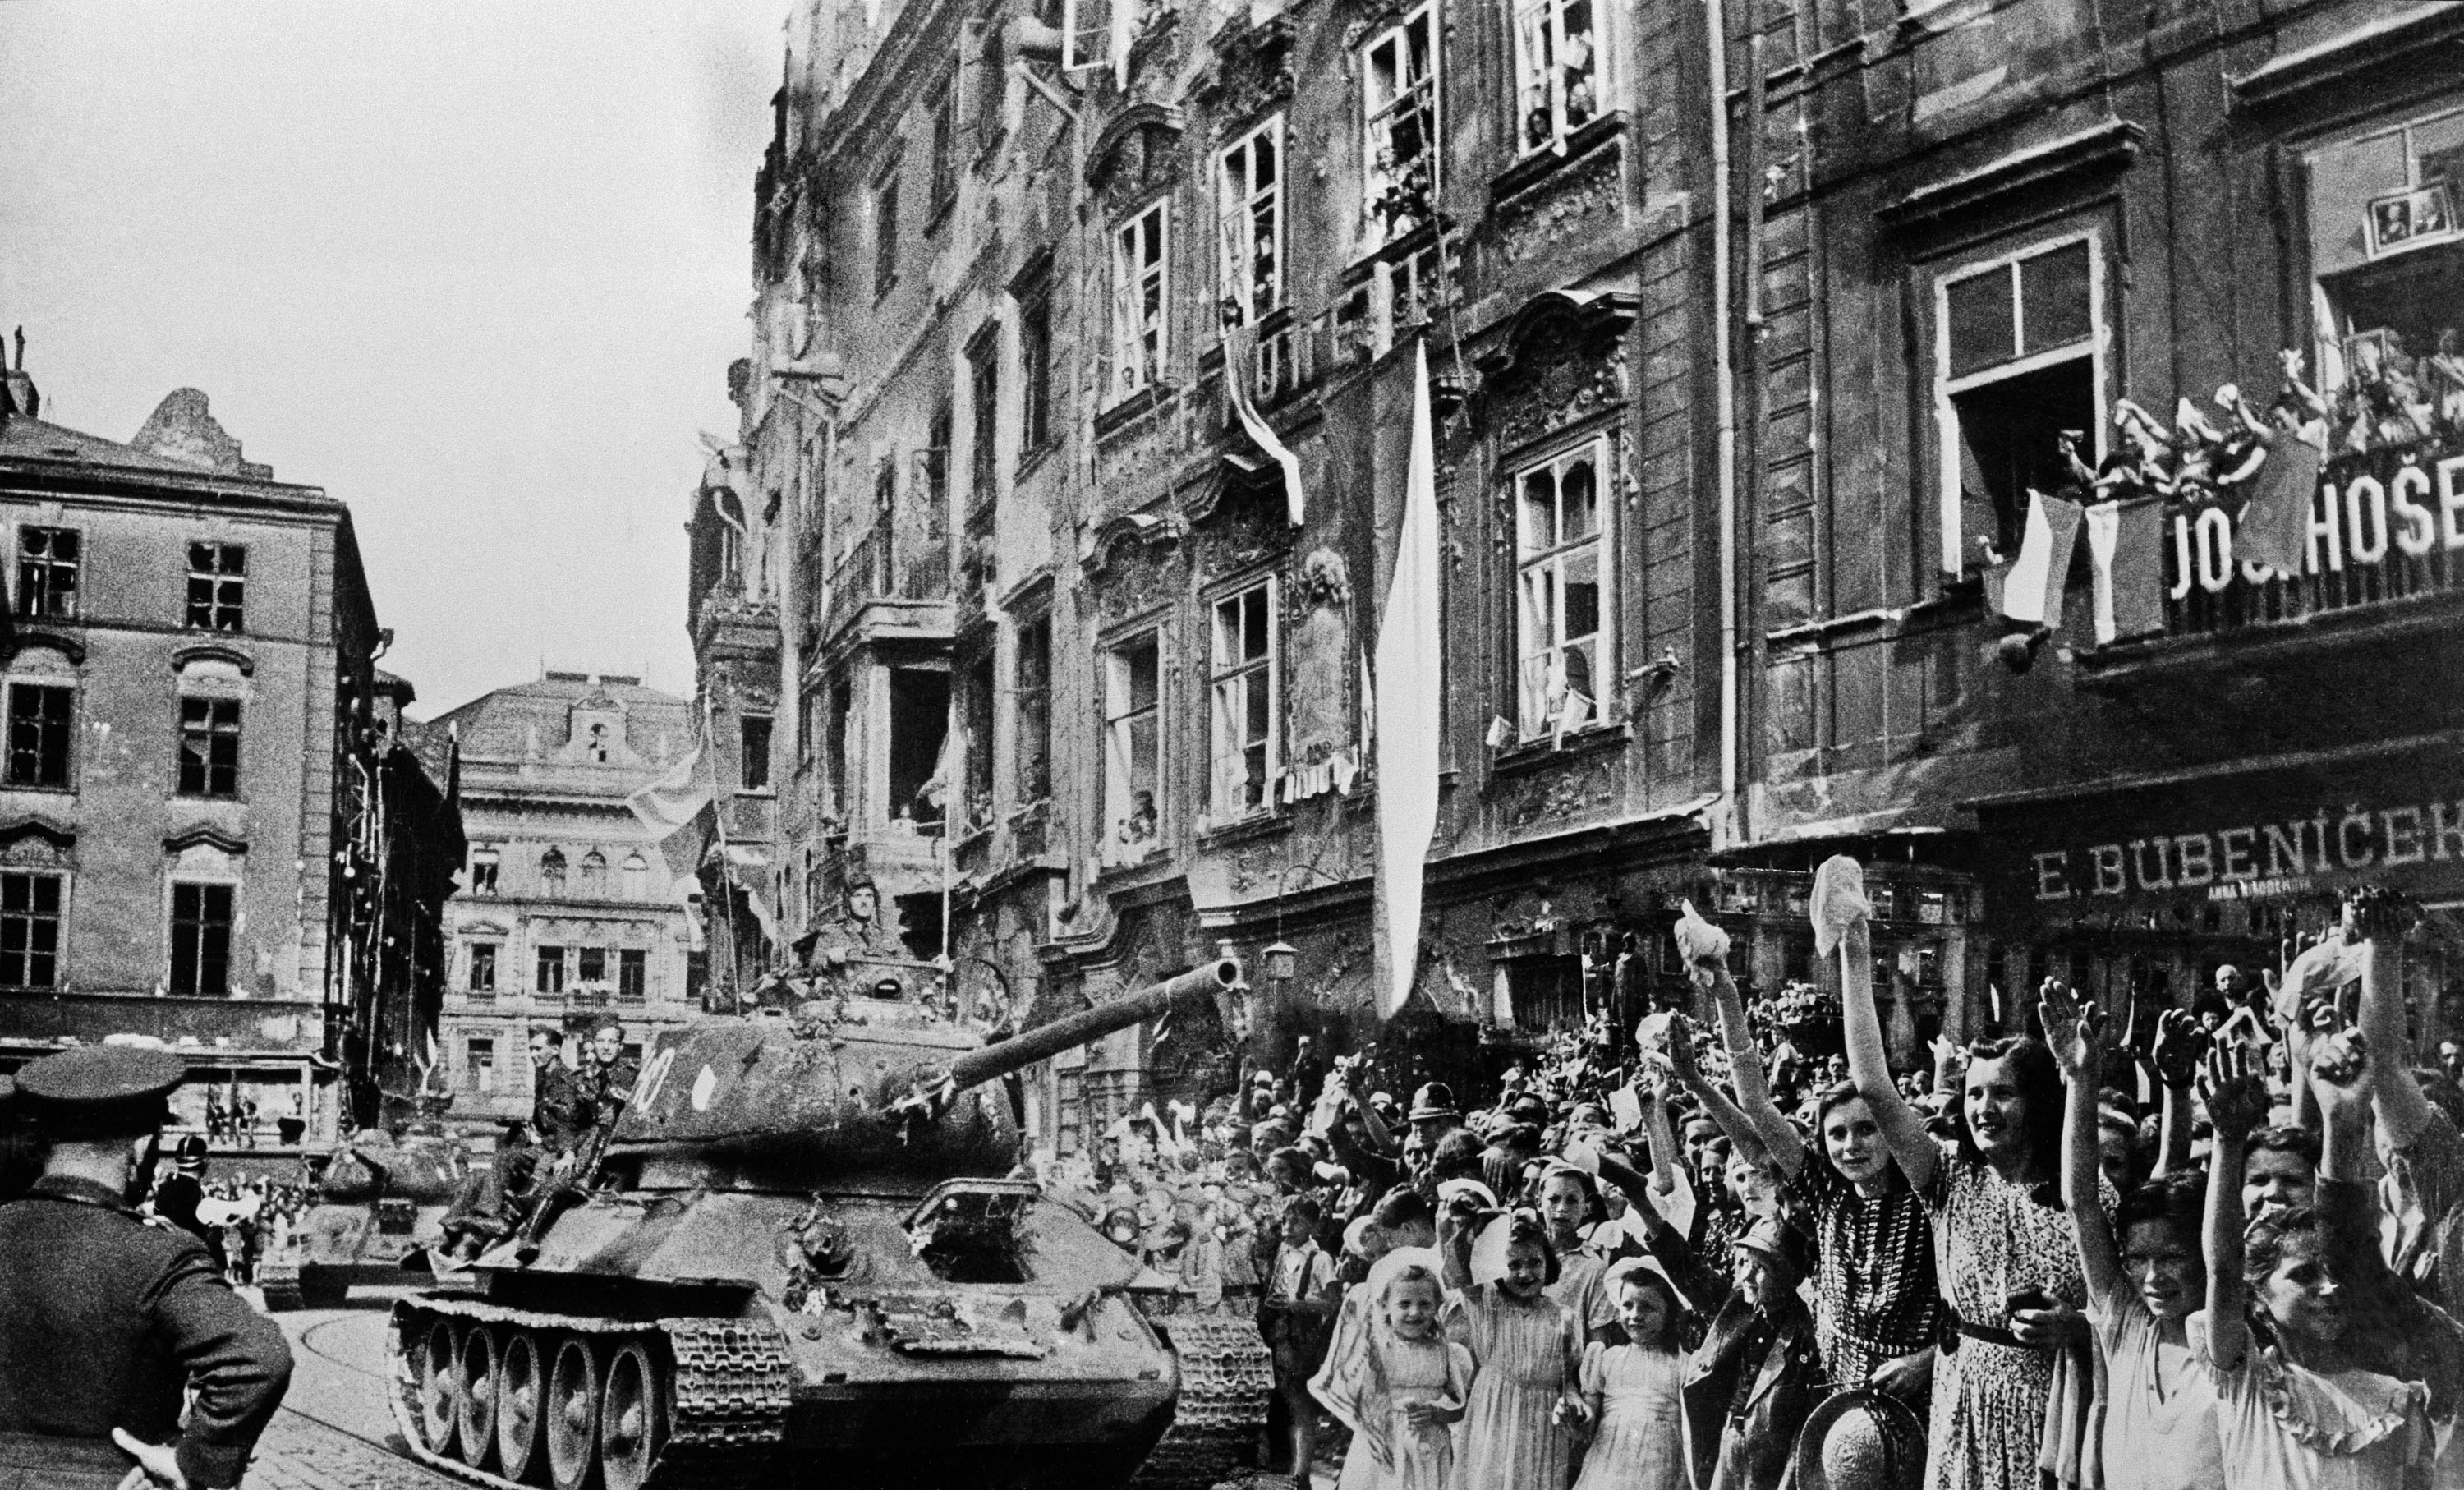 Liberation of Europe, 1945